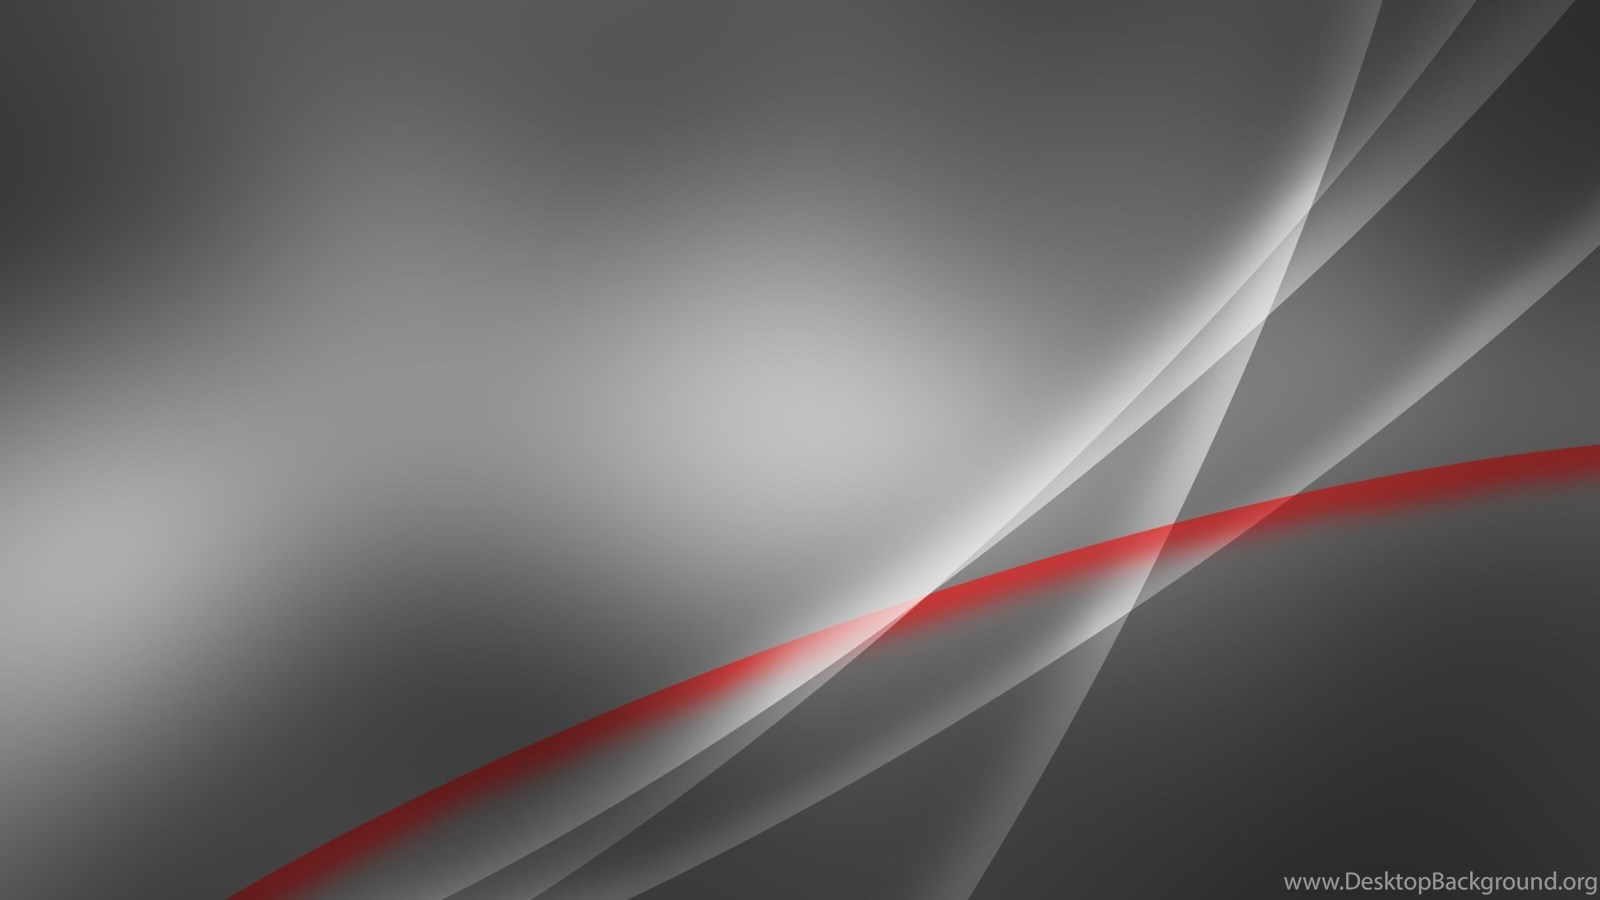 Abstract Grey Red Lines Abstraction Hd Wallpapers Desktop Background